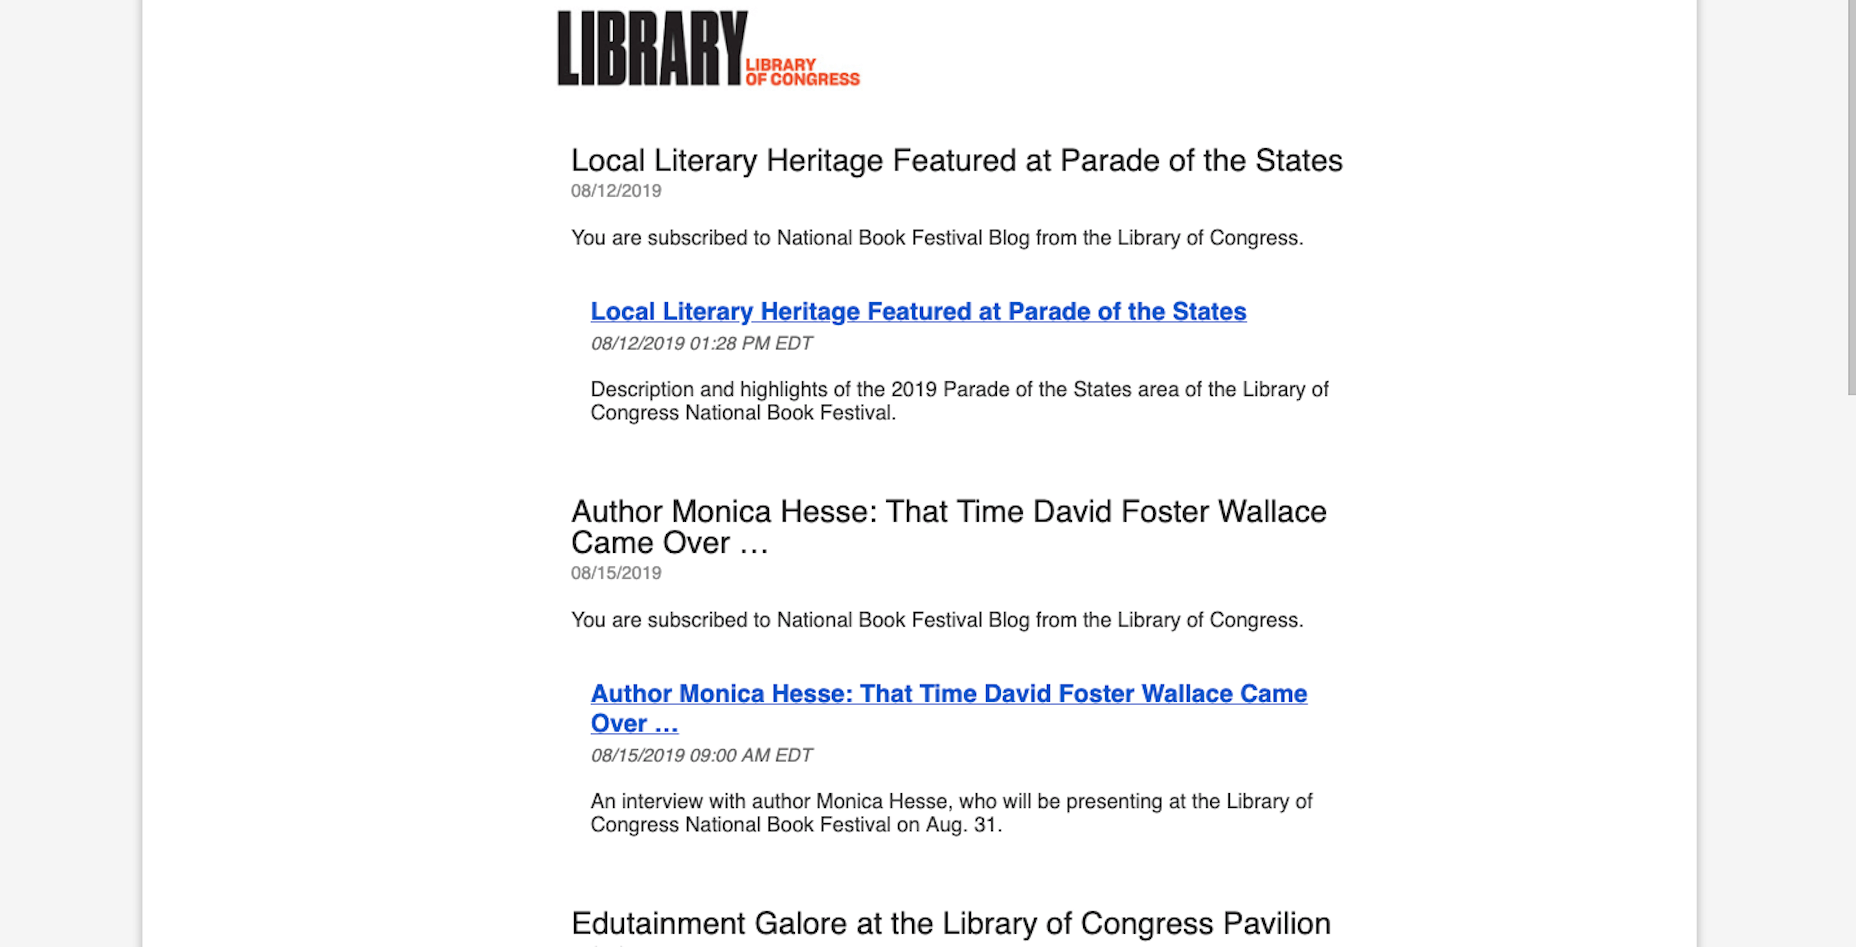 Library of Congress Newsletter